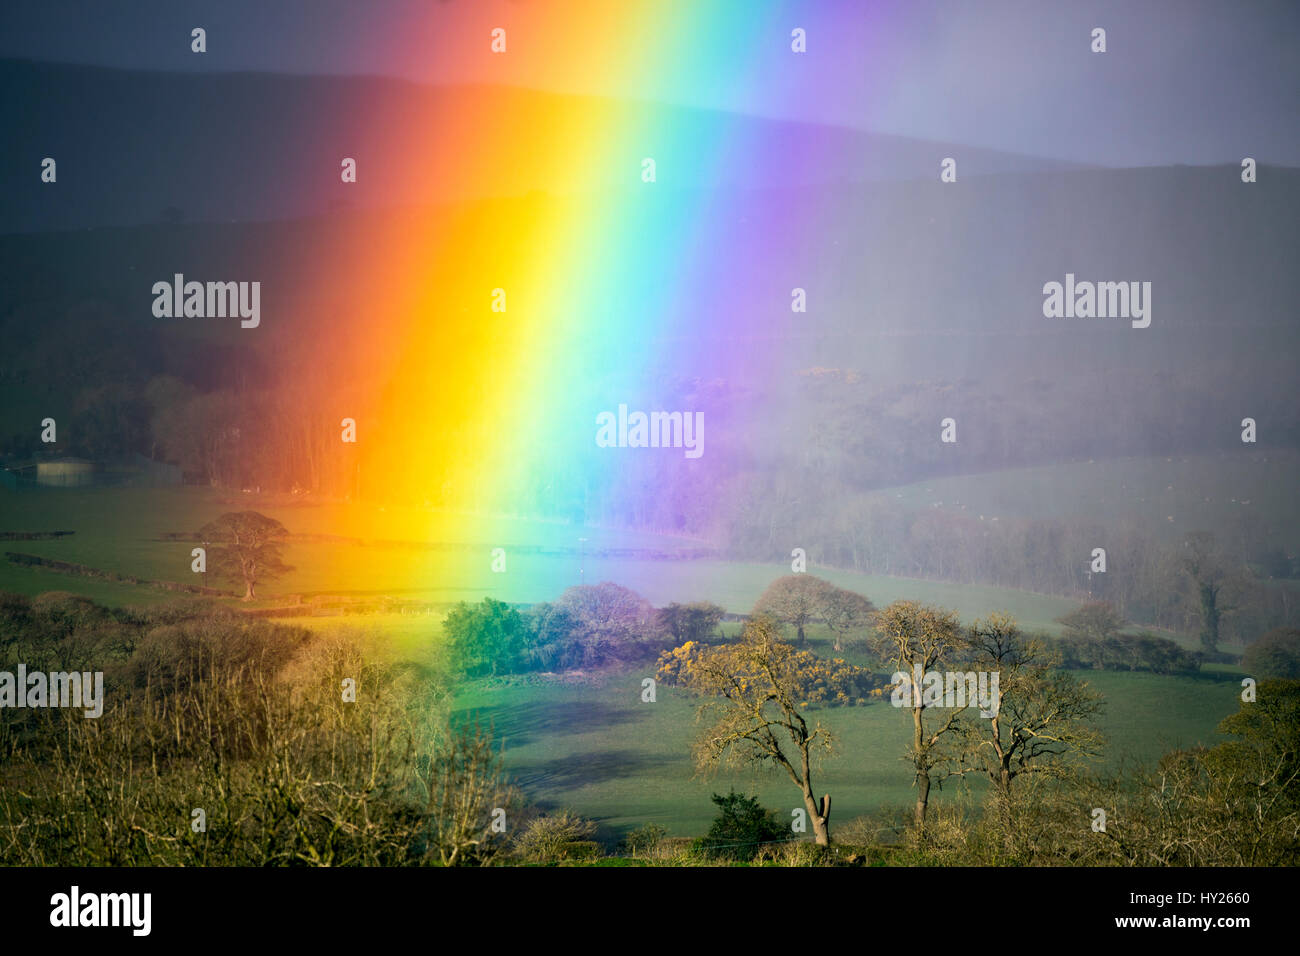 Spectacular rainbow over rural Flintshire in North Wales as rain clearing over the Clwydian Hills creates the meteorological - Stock Image